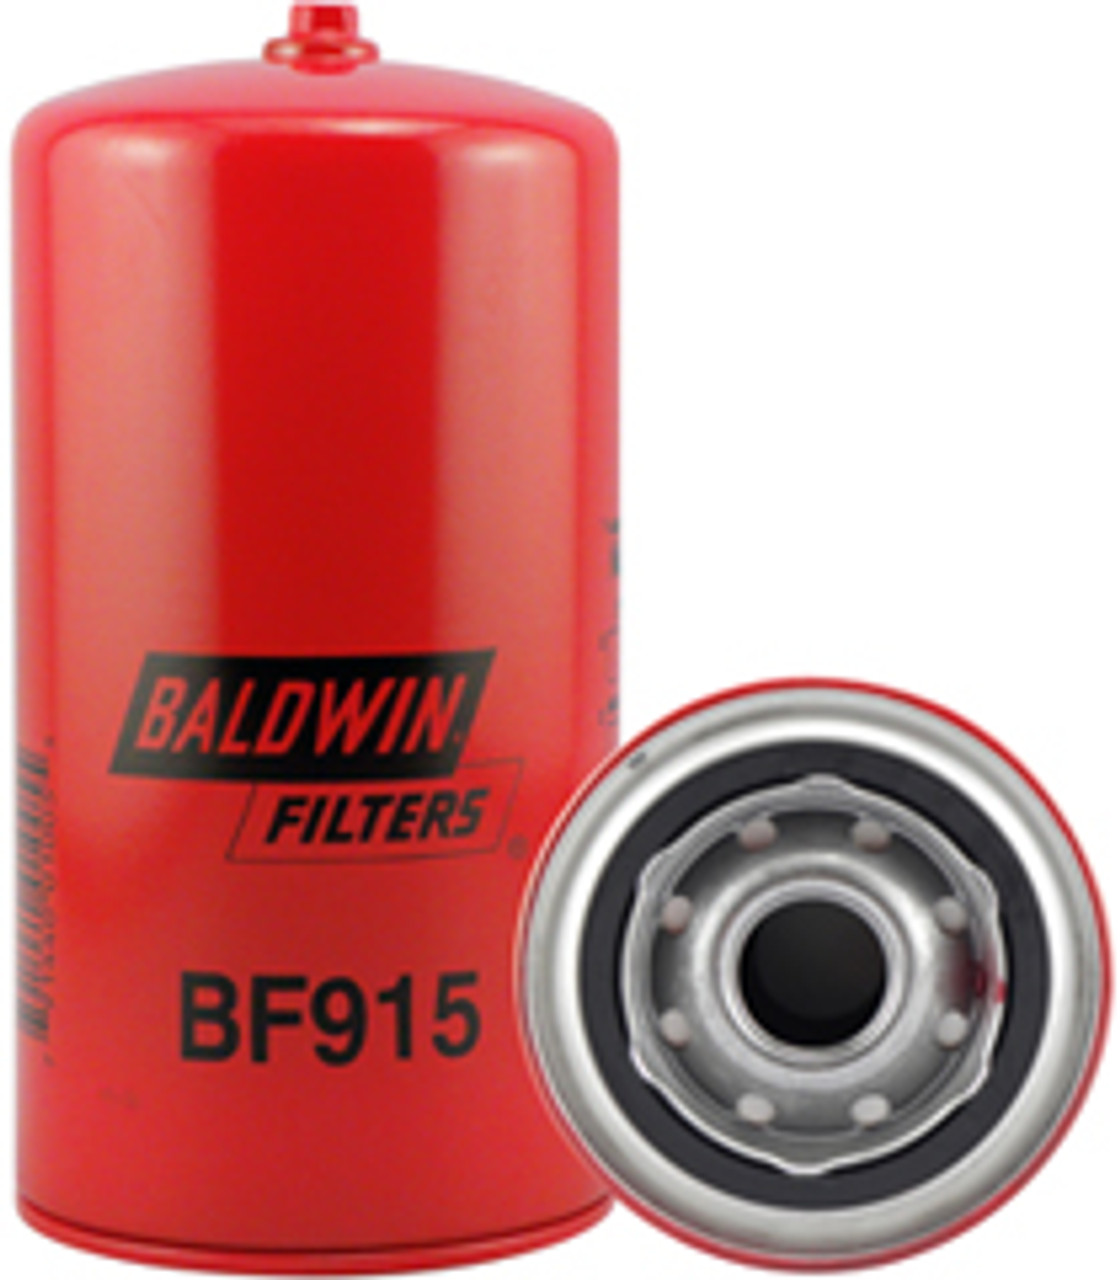 Fuel Storage Tank Spin-on Filter with Drain Baldwin BF915